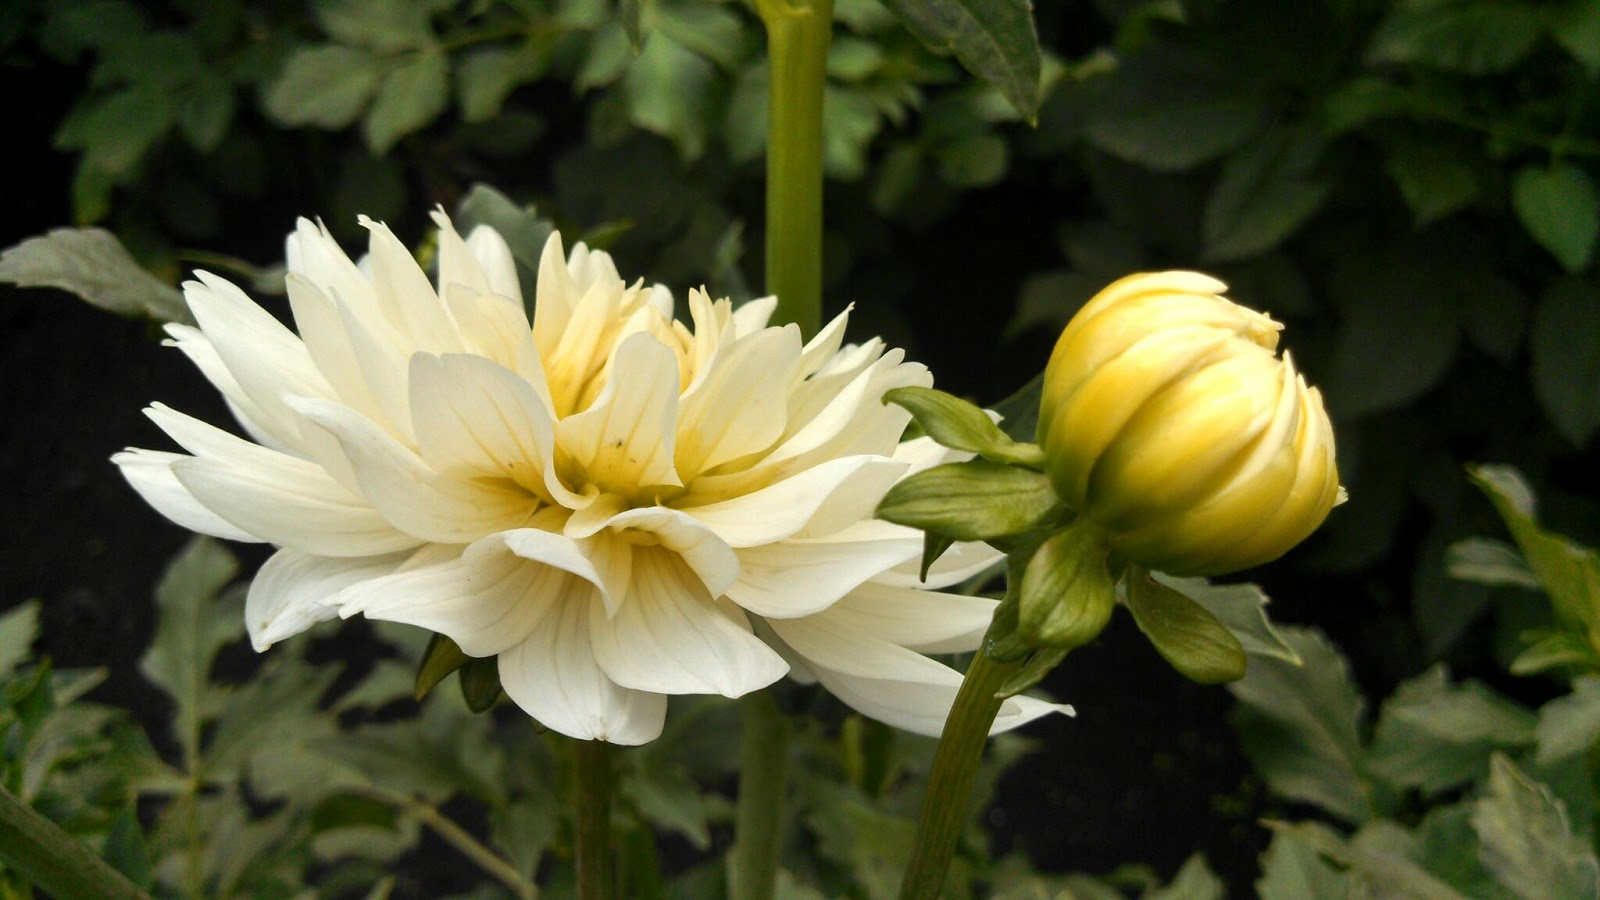 Ladder of mercy dahlia season pictures the seeds especially when the parent flowers are in a garden with lots of close by different varieties can produce all kinds of fun surprises izmirmasajfo